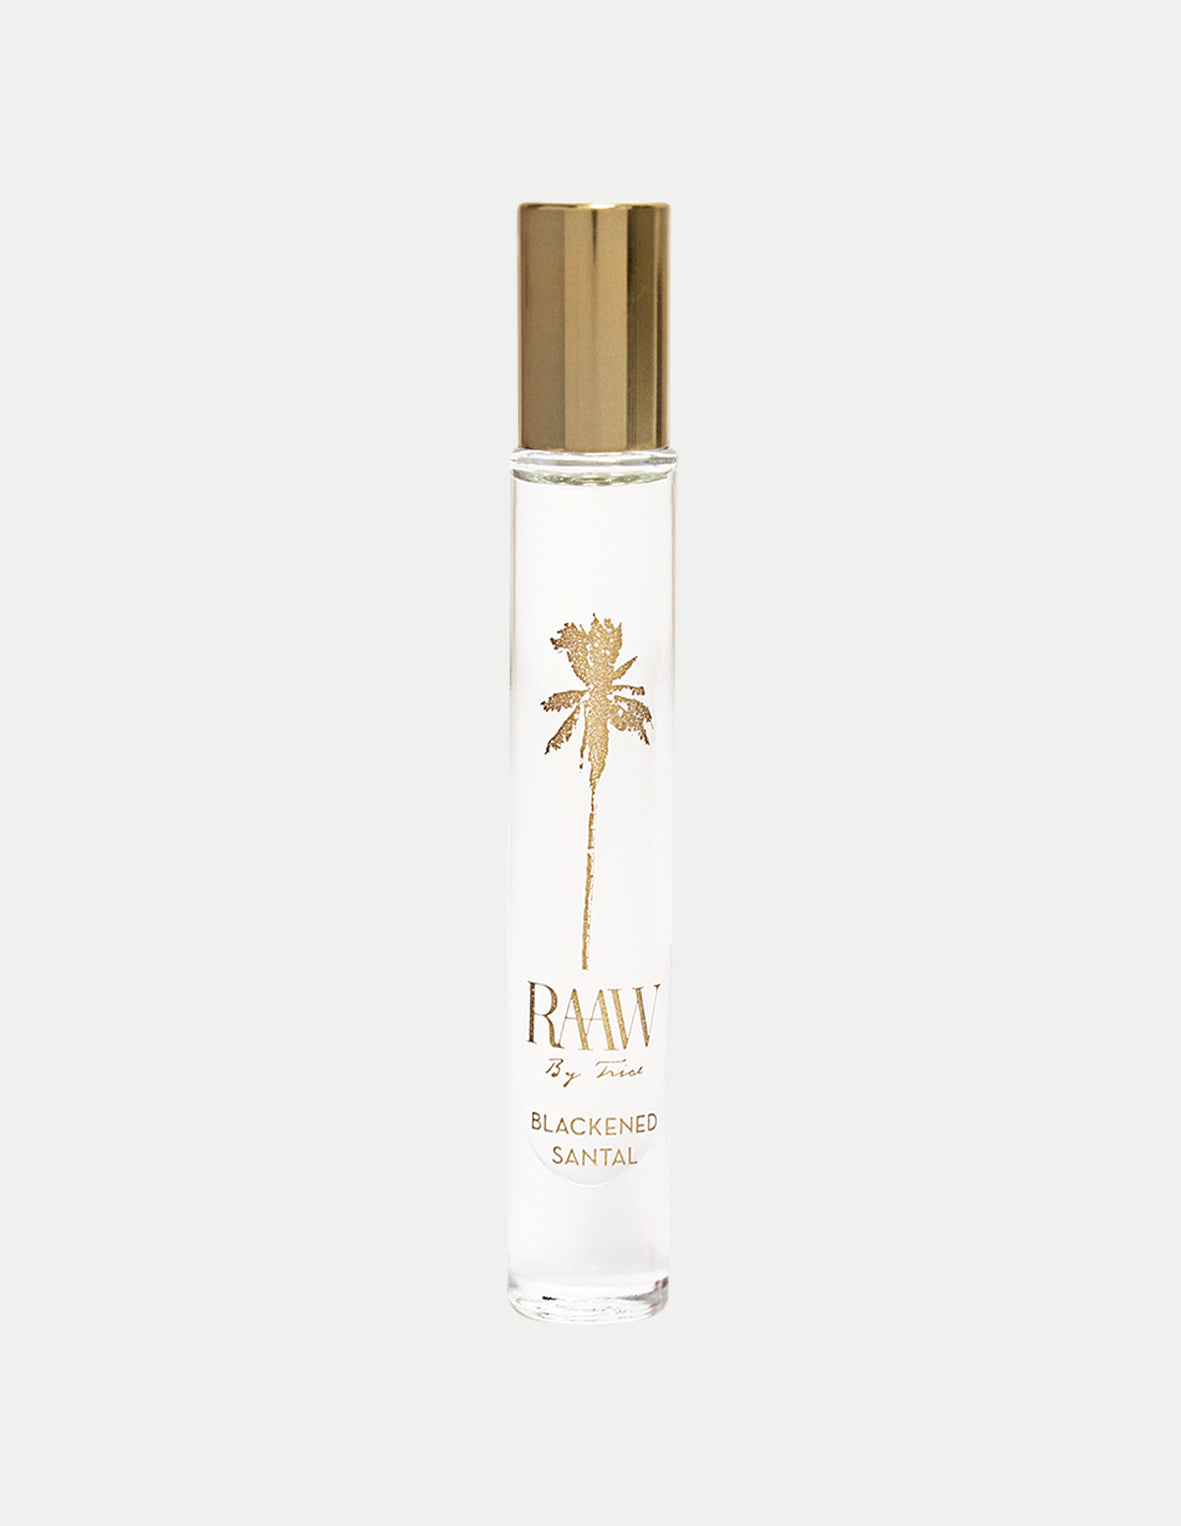 Raaw by Trice Blackened Santal Parfum Oil